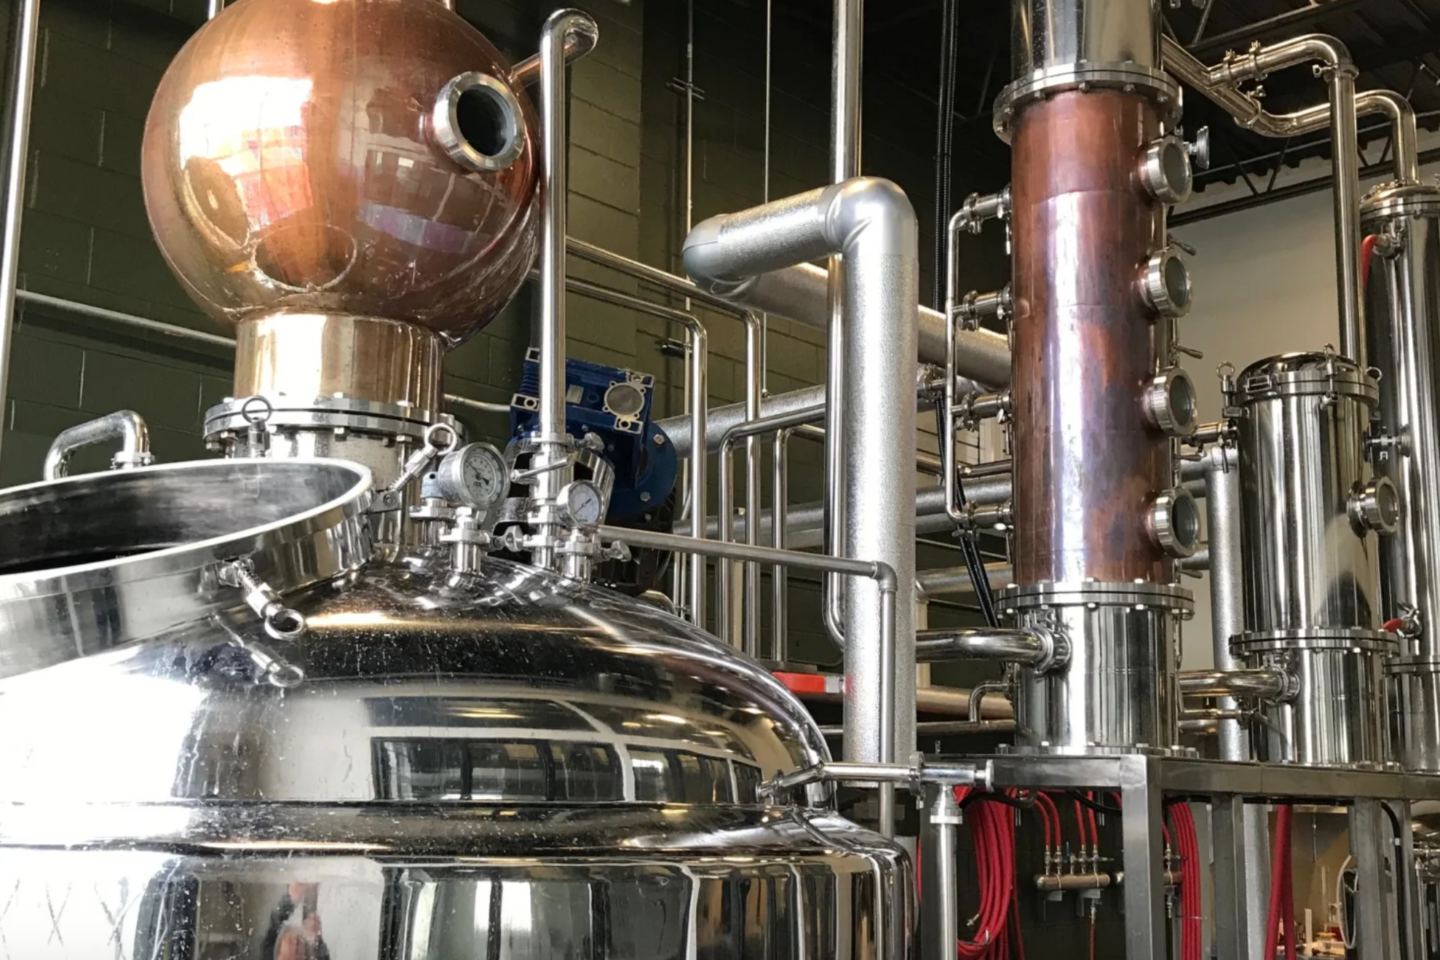 Exclusive Access to Manns Botanical Spirits Distillery for Tour and Tasting